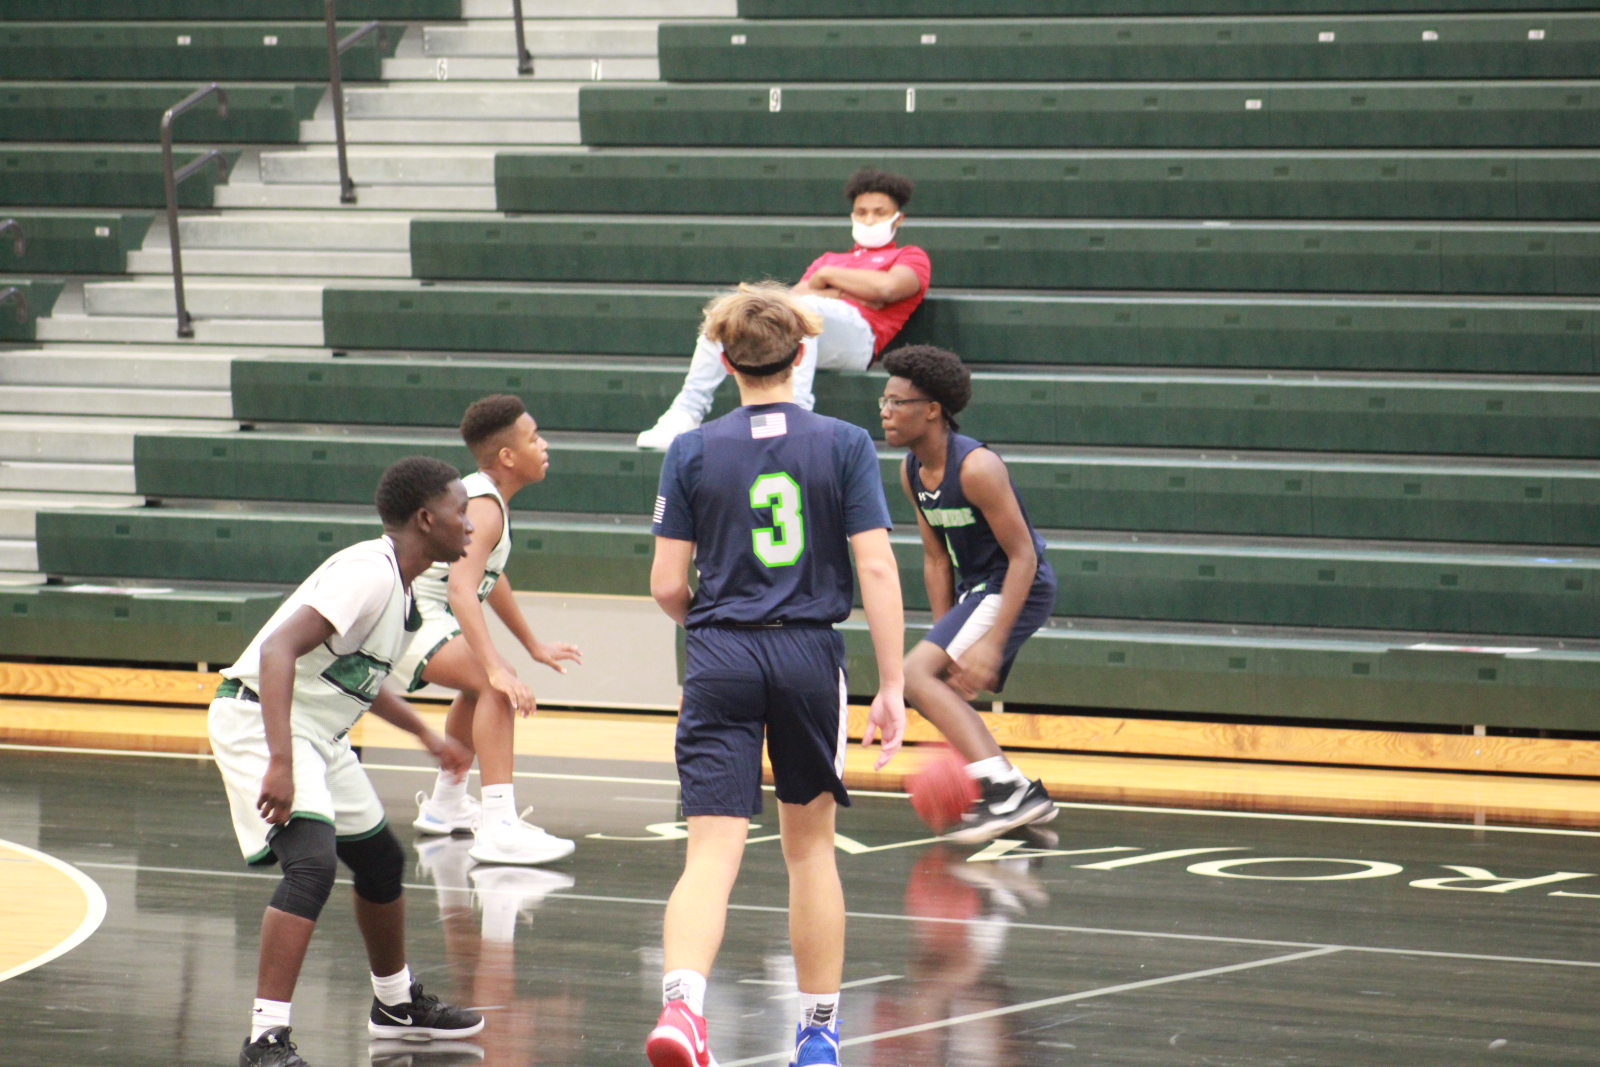 Boys Freshman Basketball vs. Windermere High School [December 4, 2020]